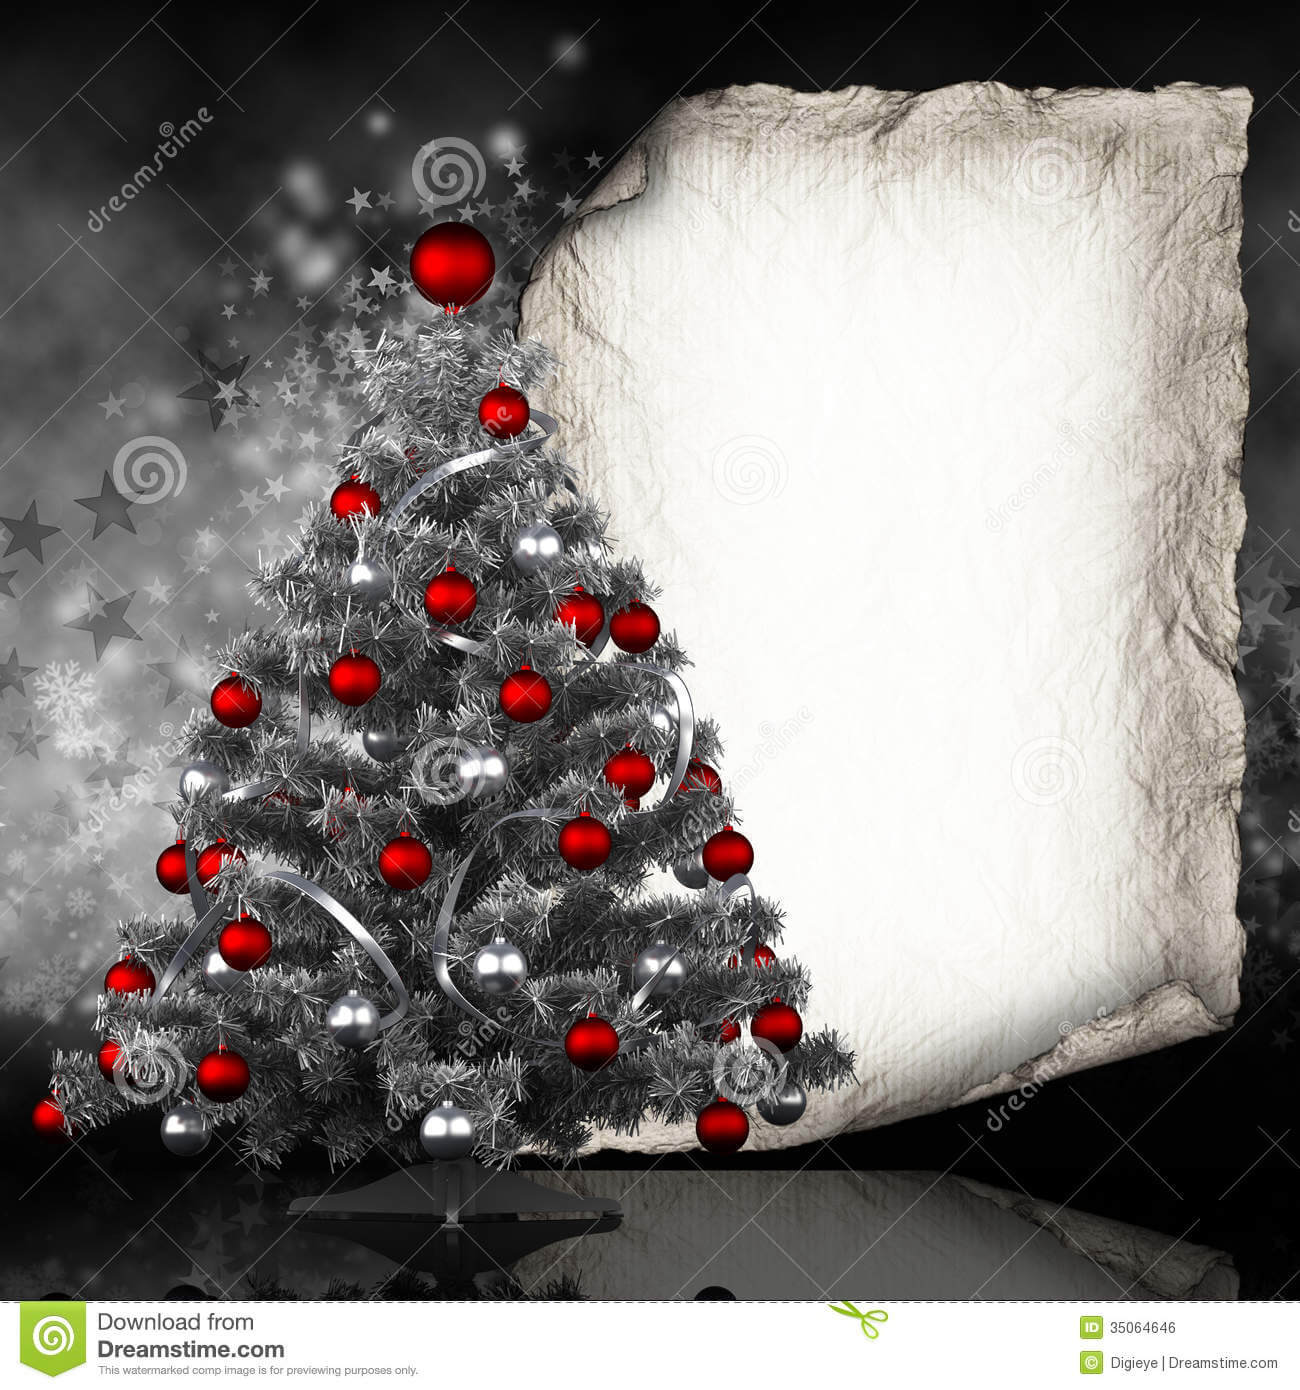 Frightening Christmas Cards Templates Free Downloads Regarding Blank Christmas Card Templates Free